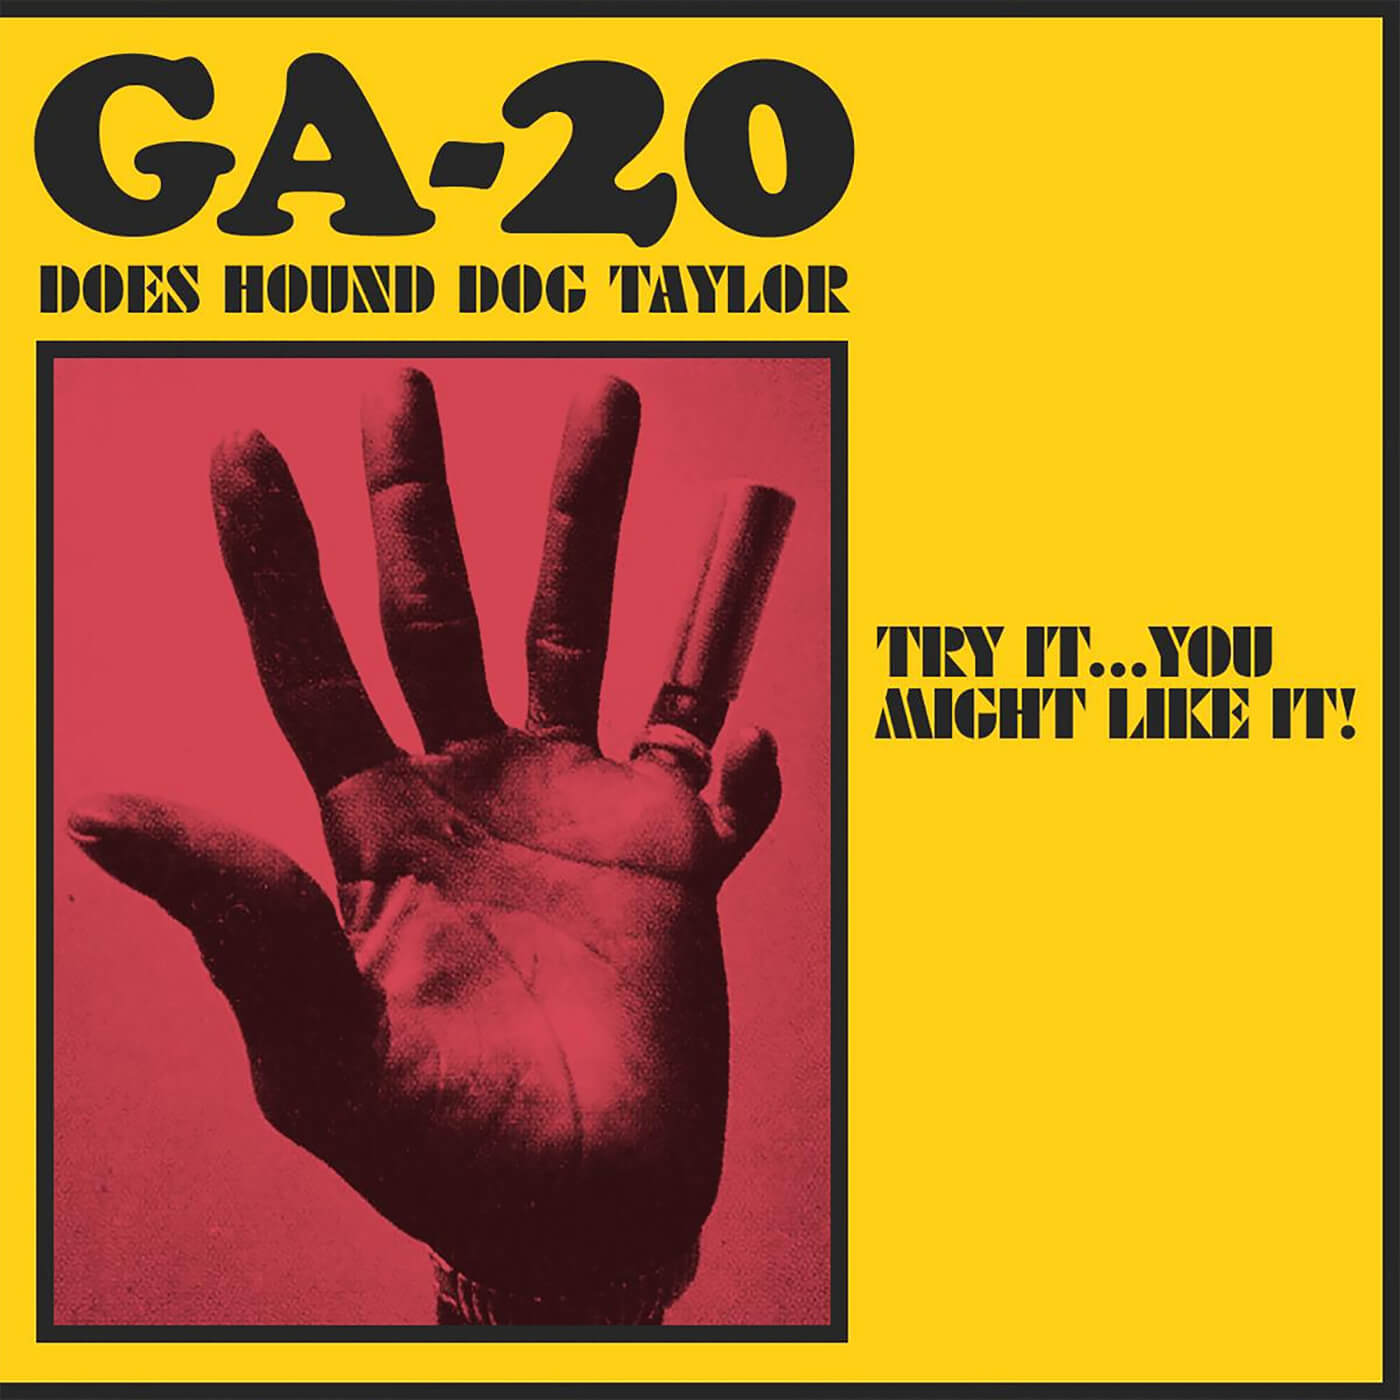 GA-20 - Try It... You Might Like It!